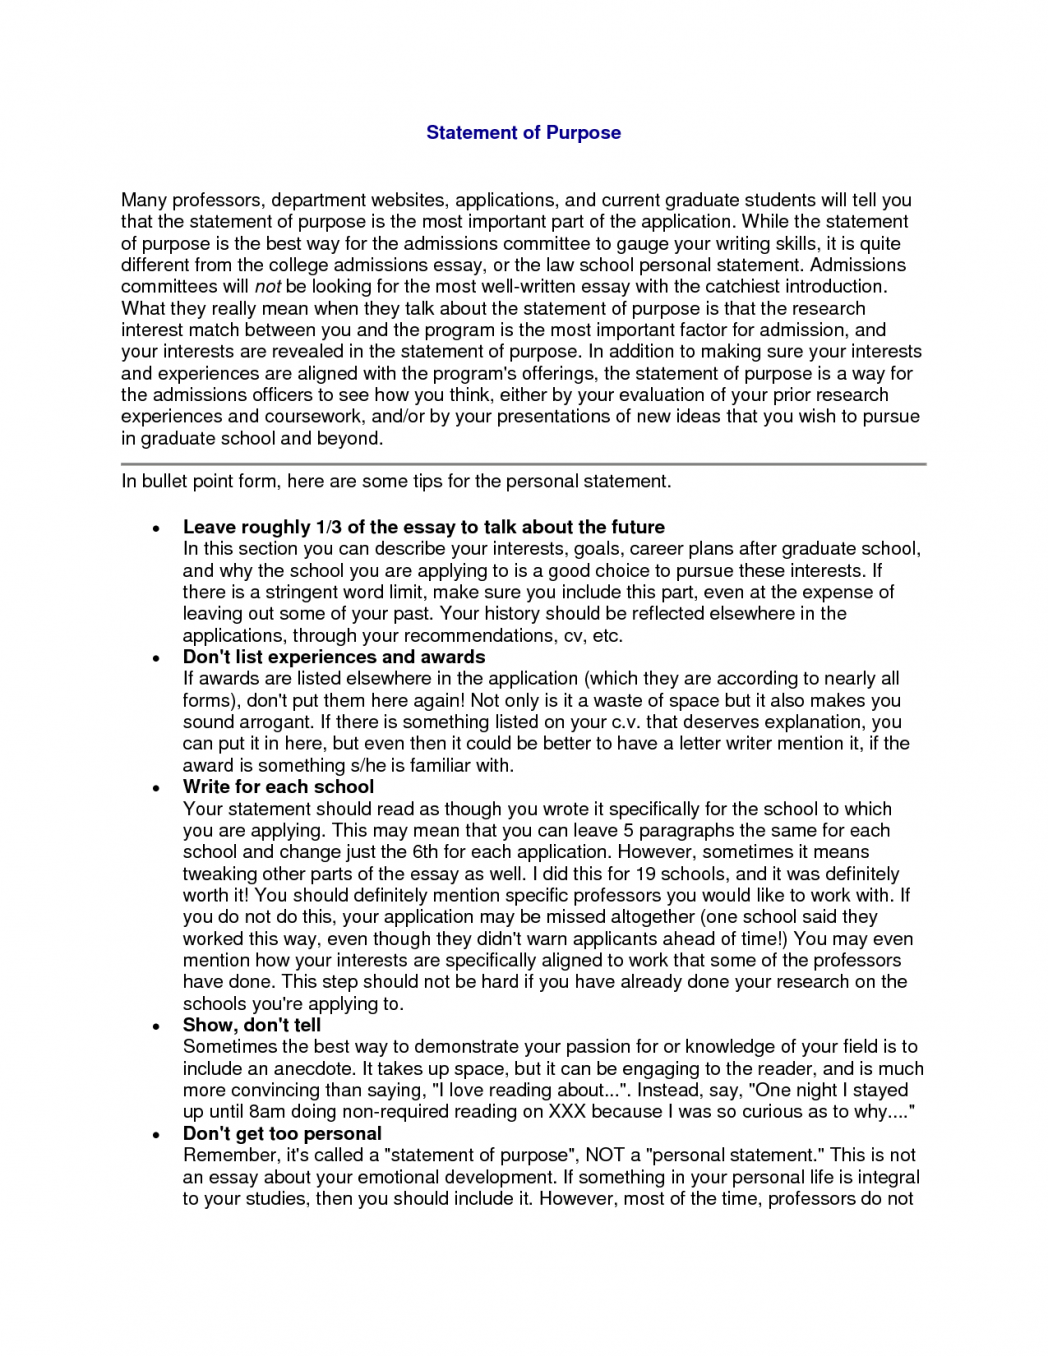 007 What Is The Purpose Of An Essay Example Graduating High School Personal Statement Sample Mba Graduate Scv Wonderful Introduction In Brainly Outline For Argumentative With A Focus On Division-classification Full